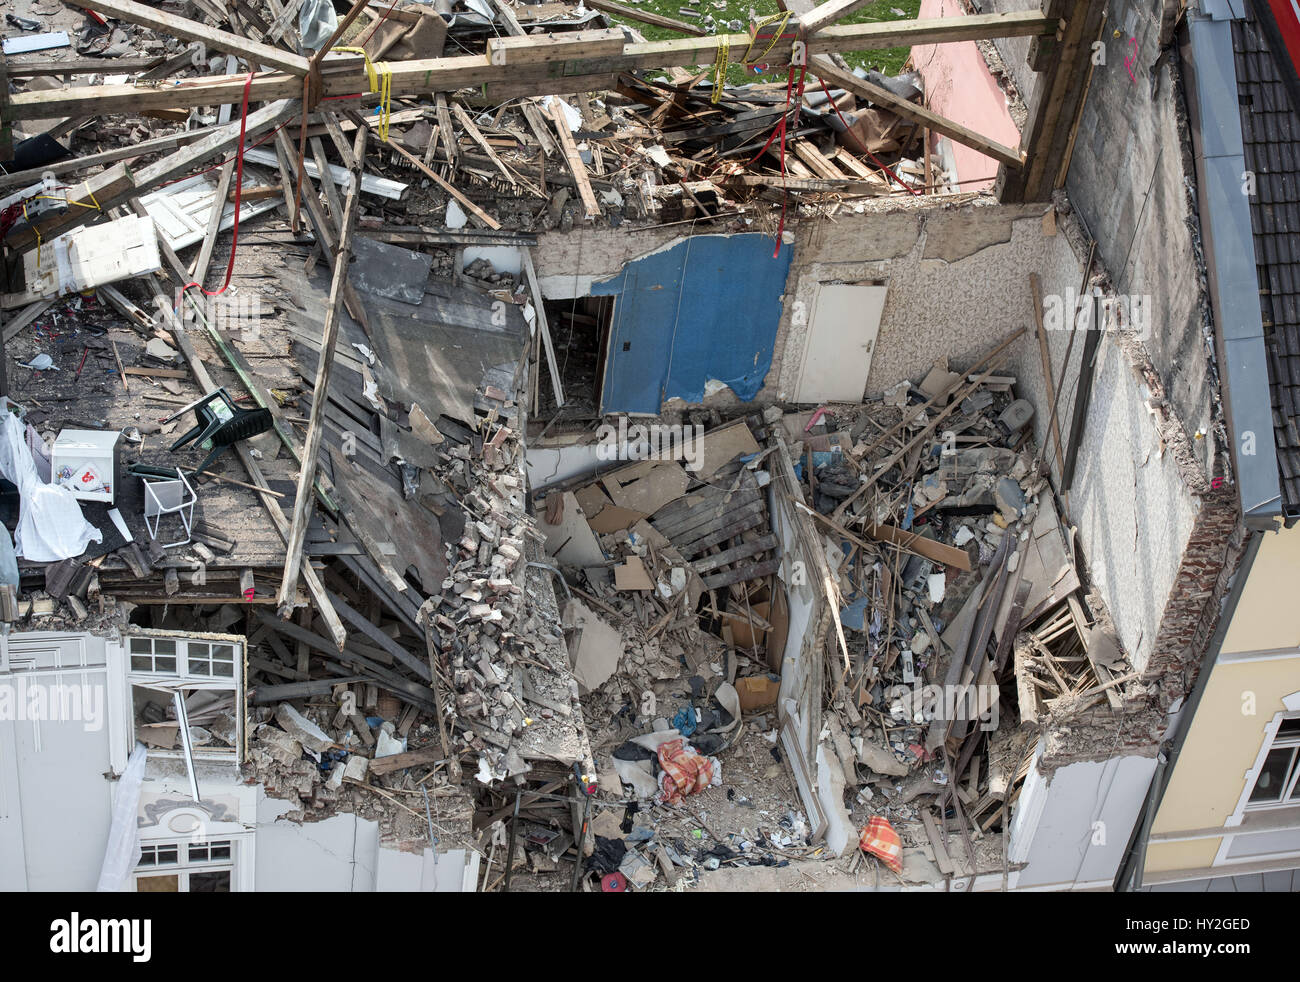 Dortmund, Germany. 1st Apr, 2017. View of the upper floors of an apartment building which were destroyed in an explosion on the previous day in Dortmund, Germany, 1 April 2017. One person died in the explosion in the building. Rescue forces found the body of a 36-year-old female resident on Saturday morning. A 48-year-old tenant is suspected to have caused the explosion for unknown reasons. Photo: Bernd Thissen/dpa/Alamy Live News Stock Photo